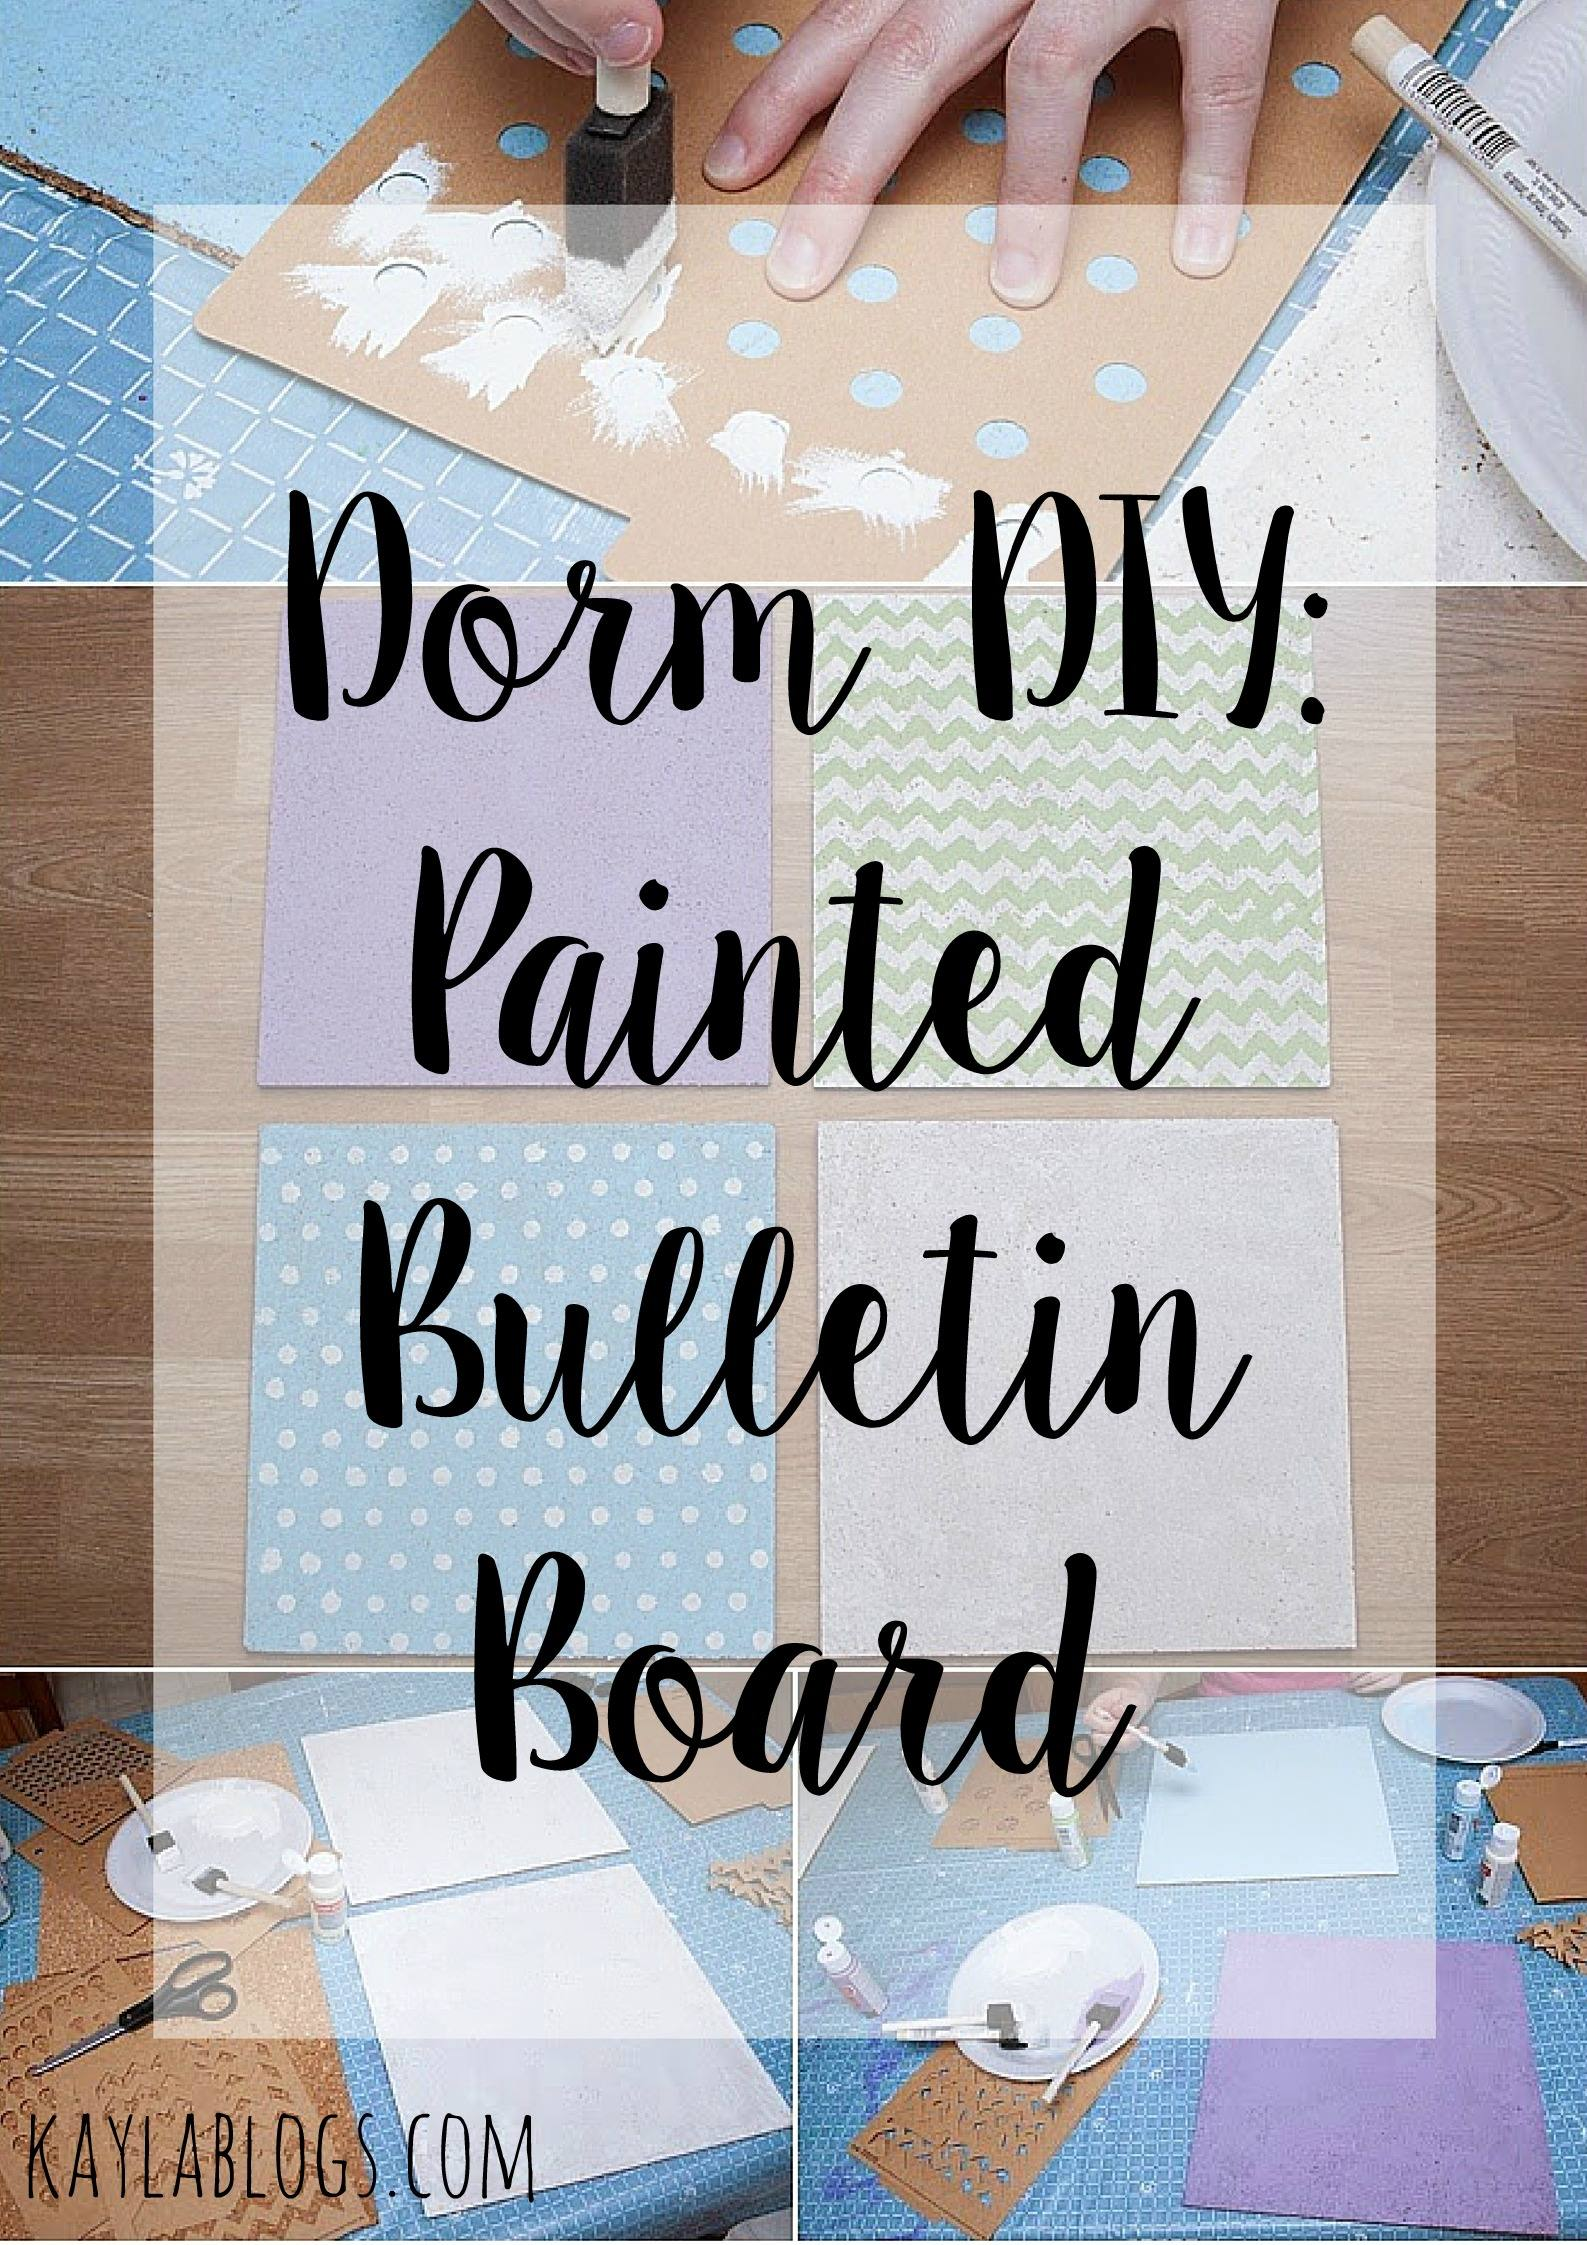 Dorm DIY Bulletin Board